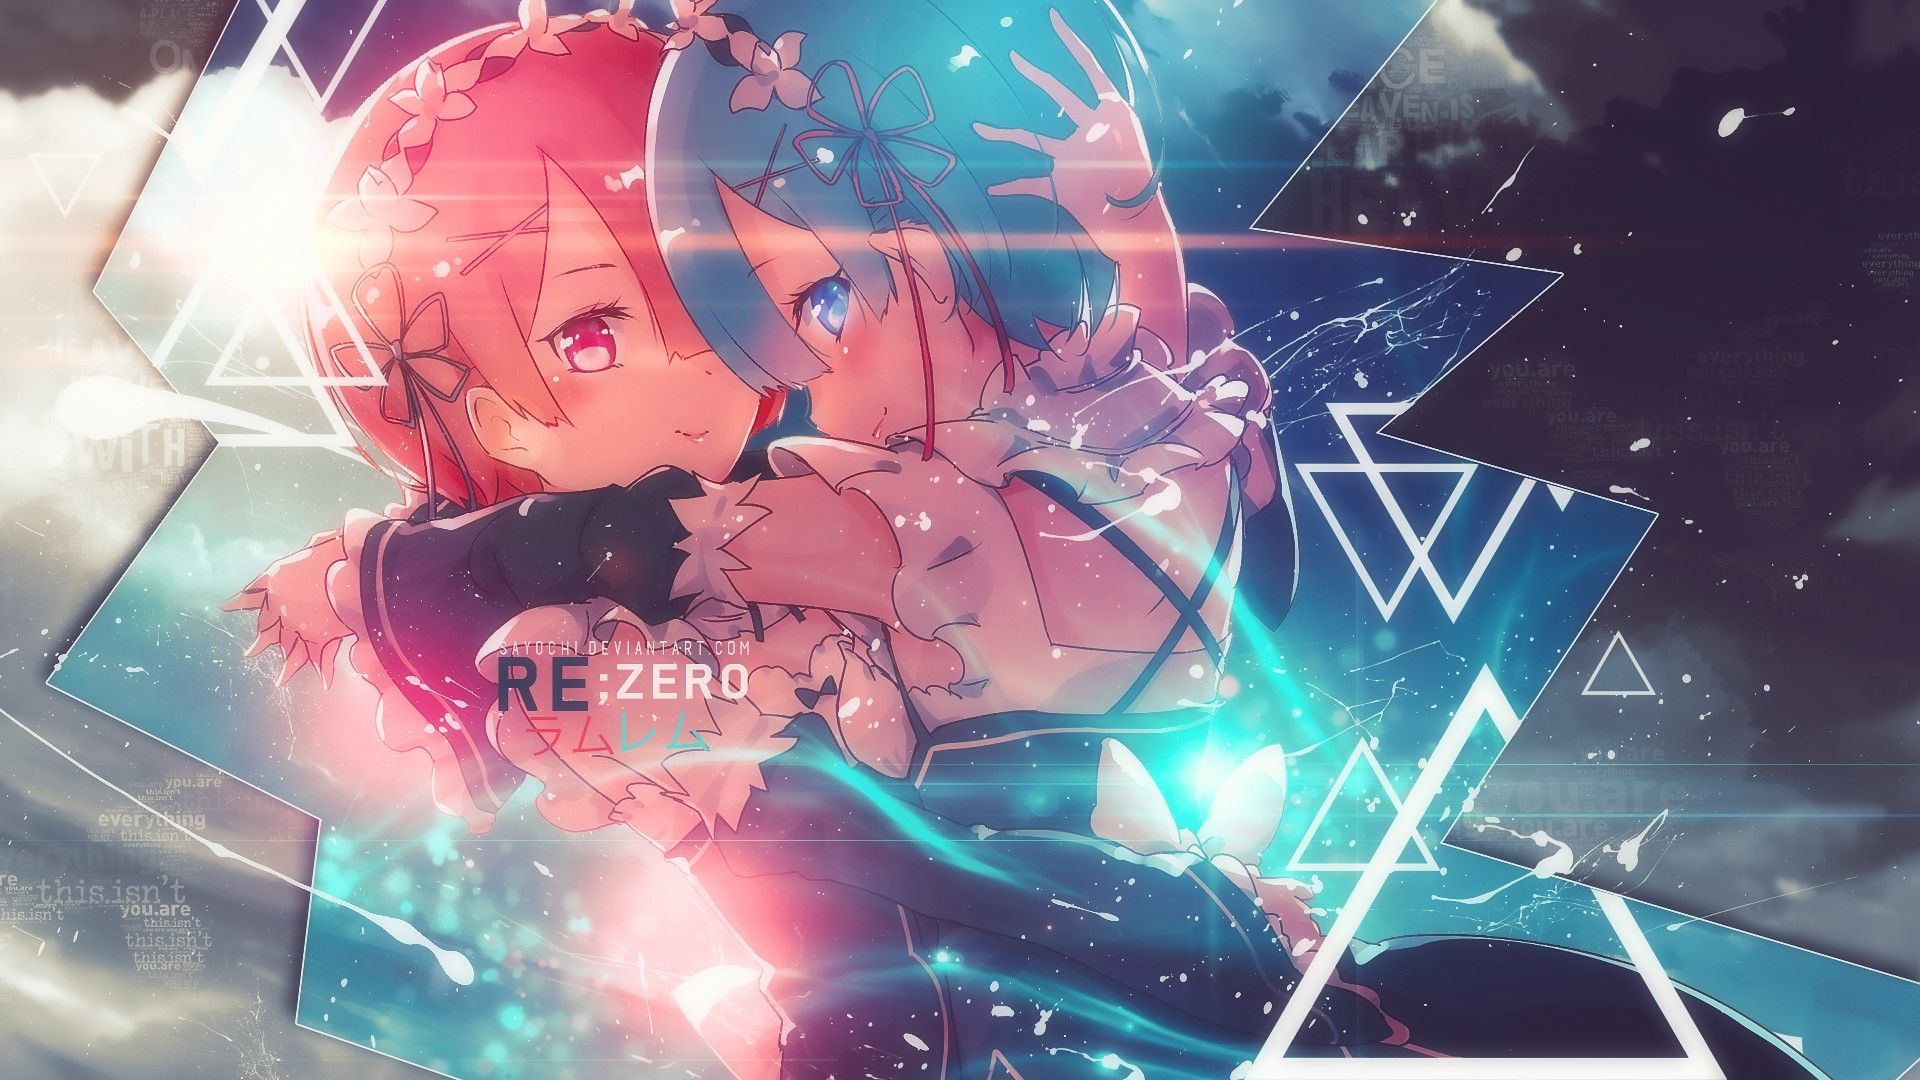 Re Zero Wallpaper Cute Re Zero Wallpaper Anime Scenery Wallpaper